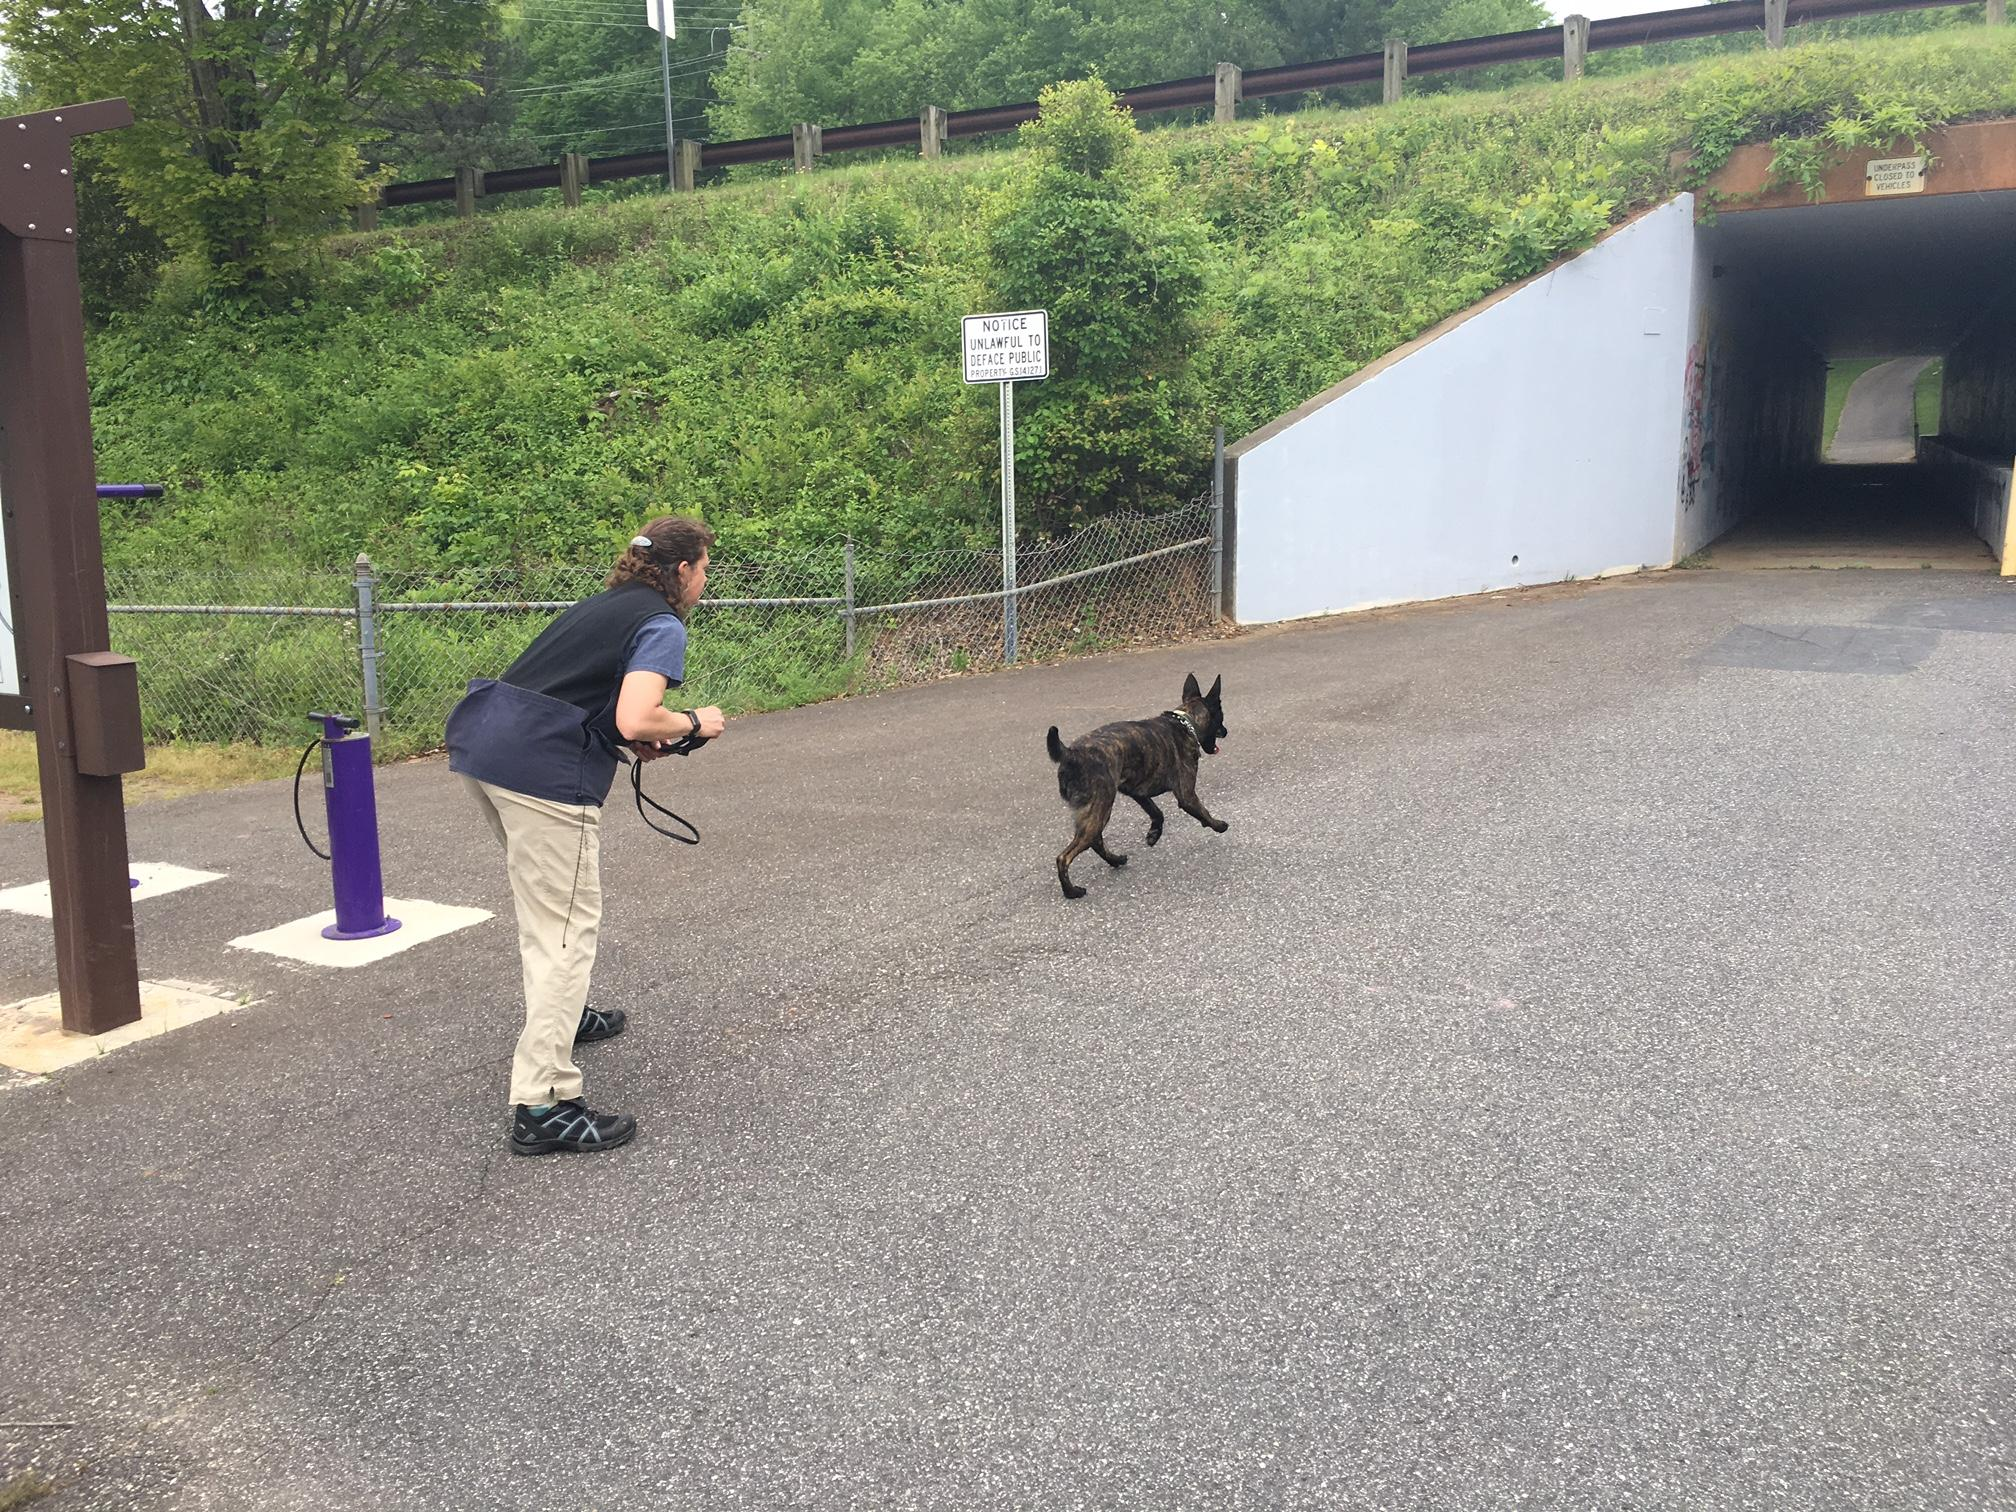 Western Carolina University is out for the summer, and dogs are roaming around campus. Cadaver dogs and their handlers from across the country are attending a training program. (Photo credit: WLOS staff)